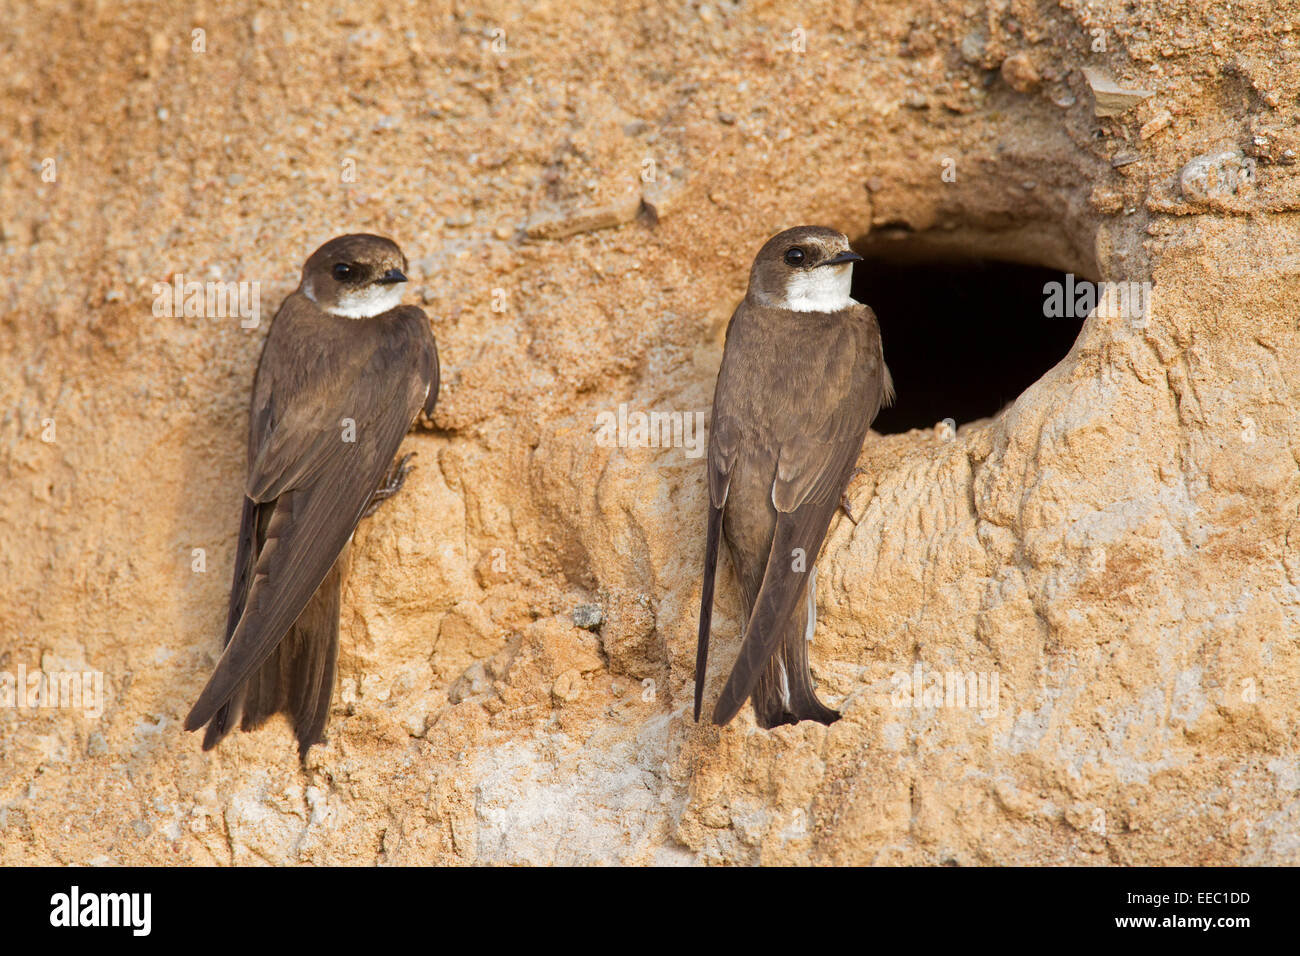 Two European sand martins / bank swallows (Riparia riparia) at nest hole in breeding colony on riverbank - Stock Image